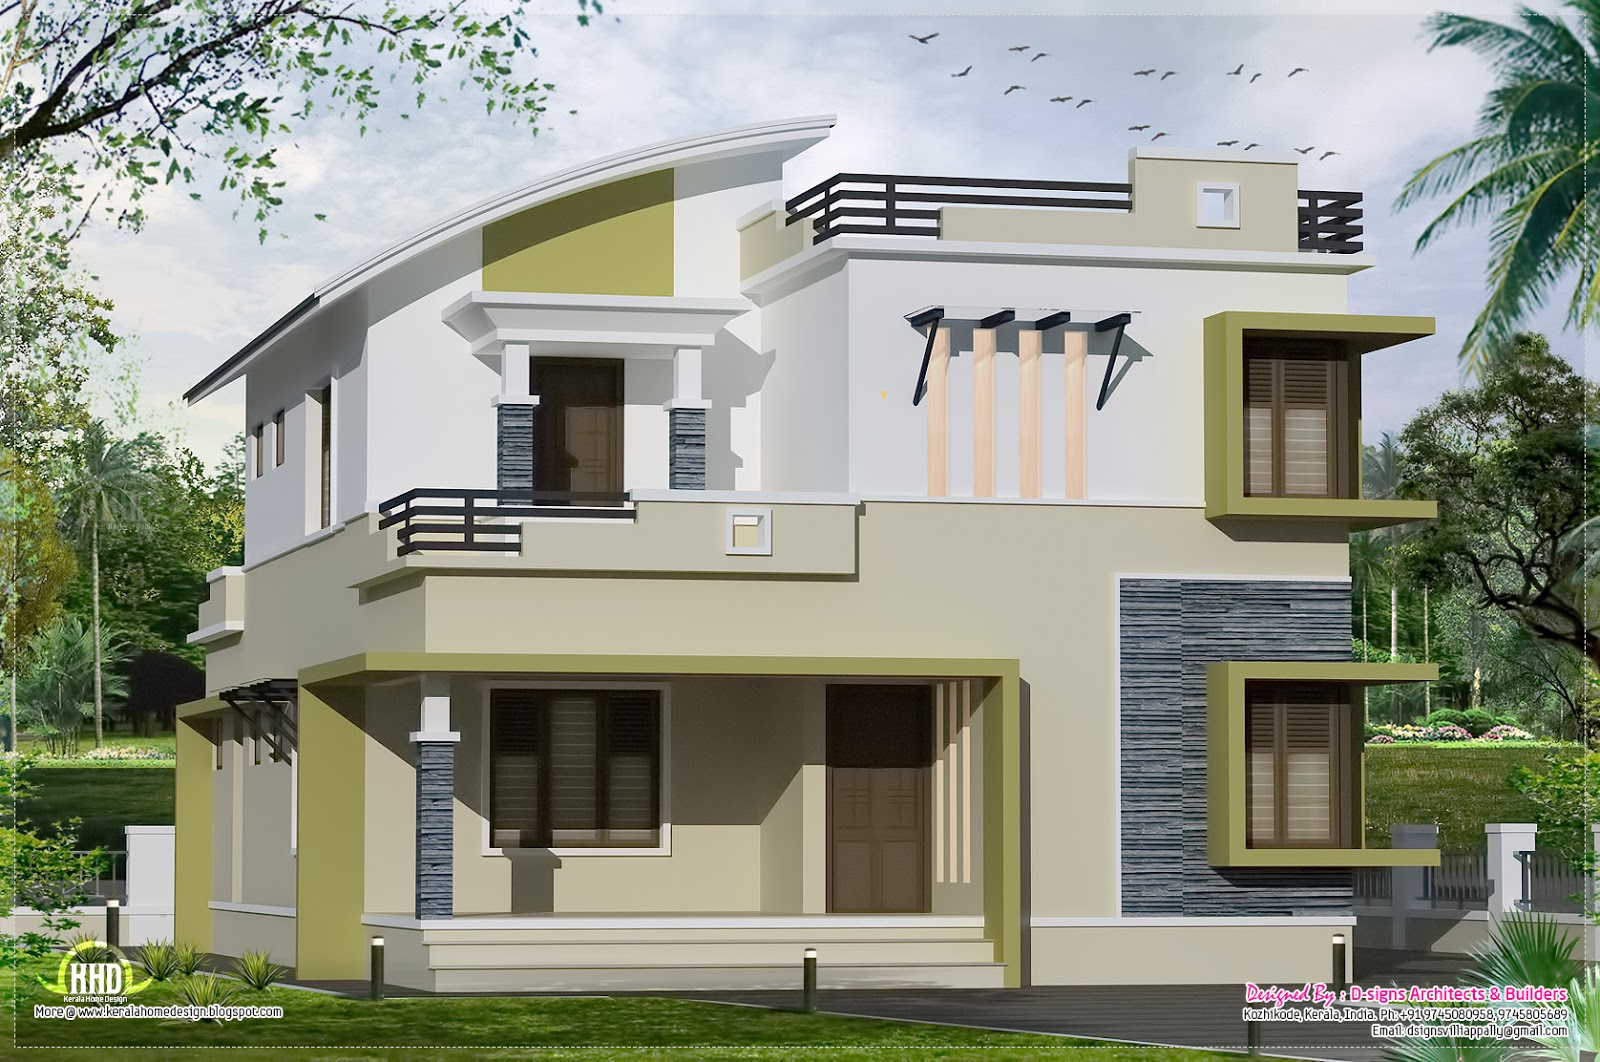 2400 Square Feet 2 Floor House Kerala Home Design And Floor Plans